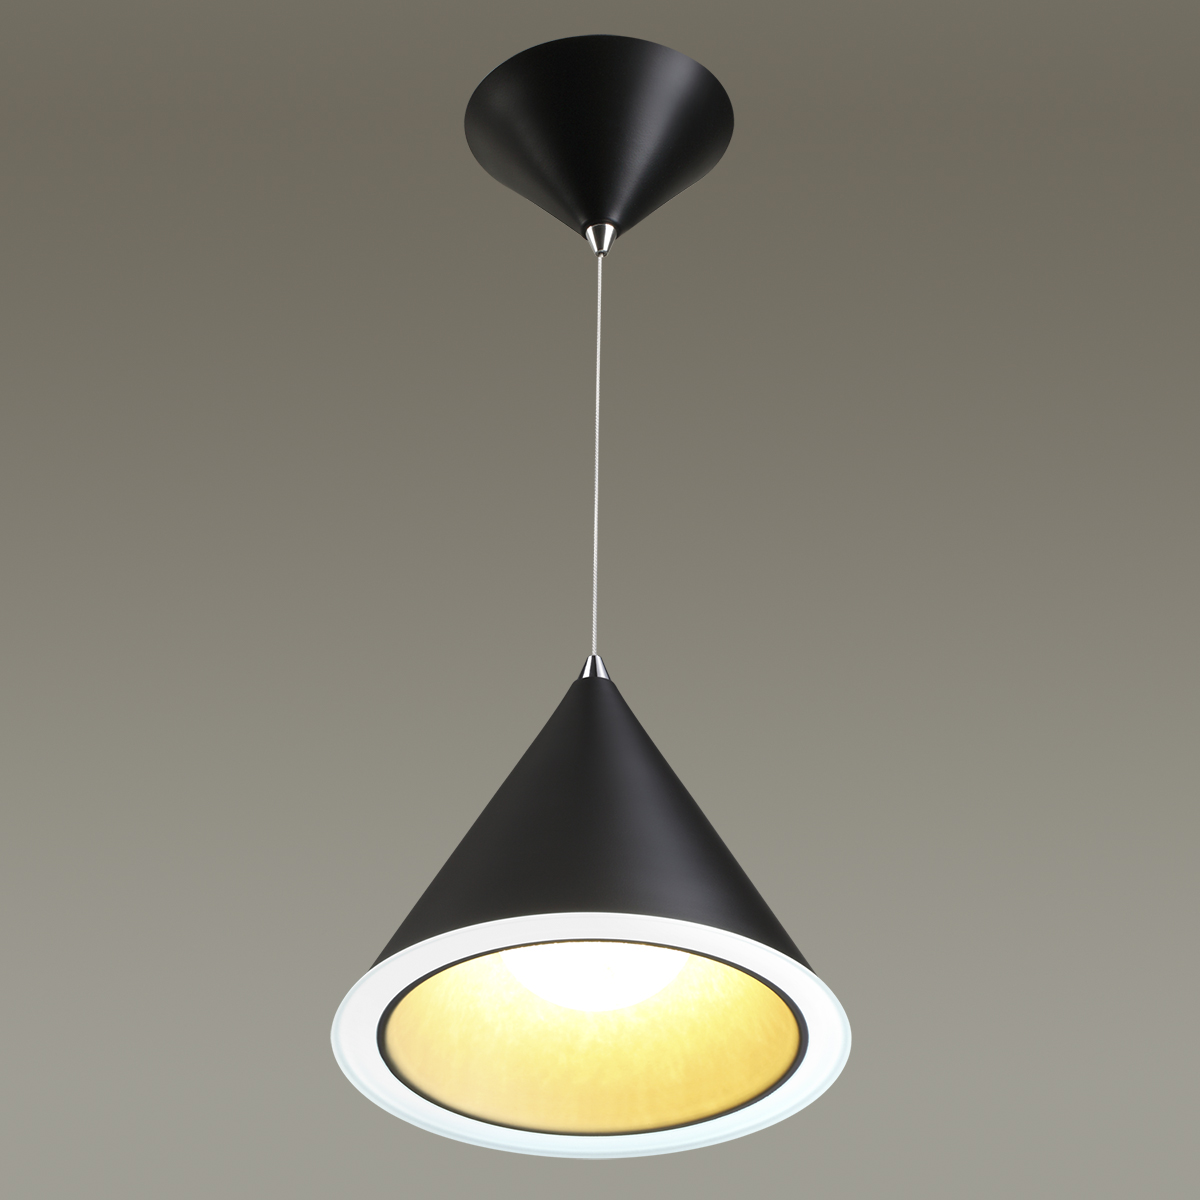 Подвес ODEON LIGHT арт. 3838/19CL